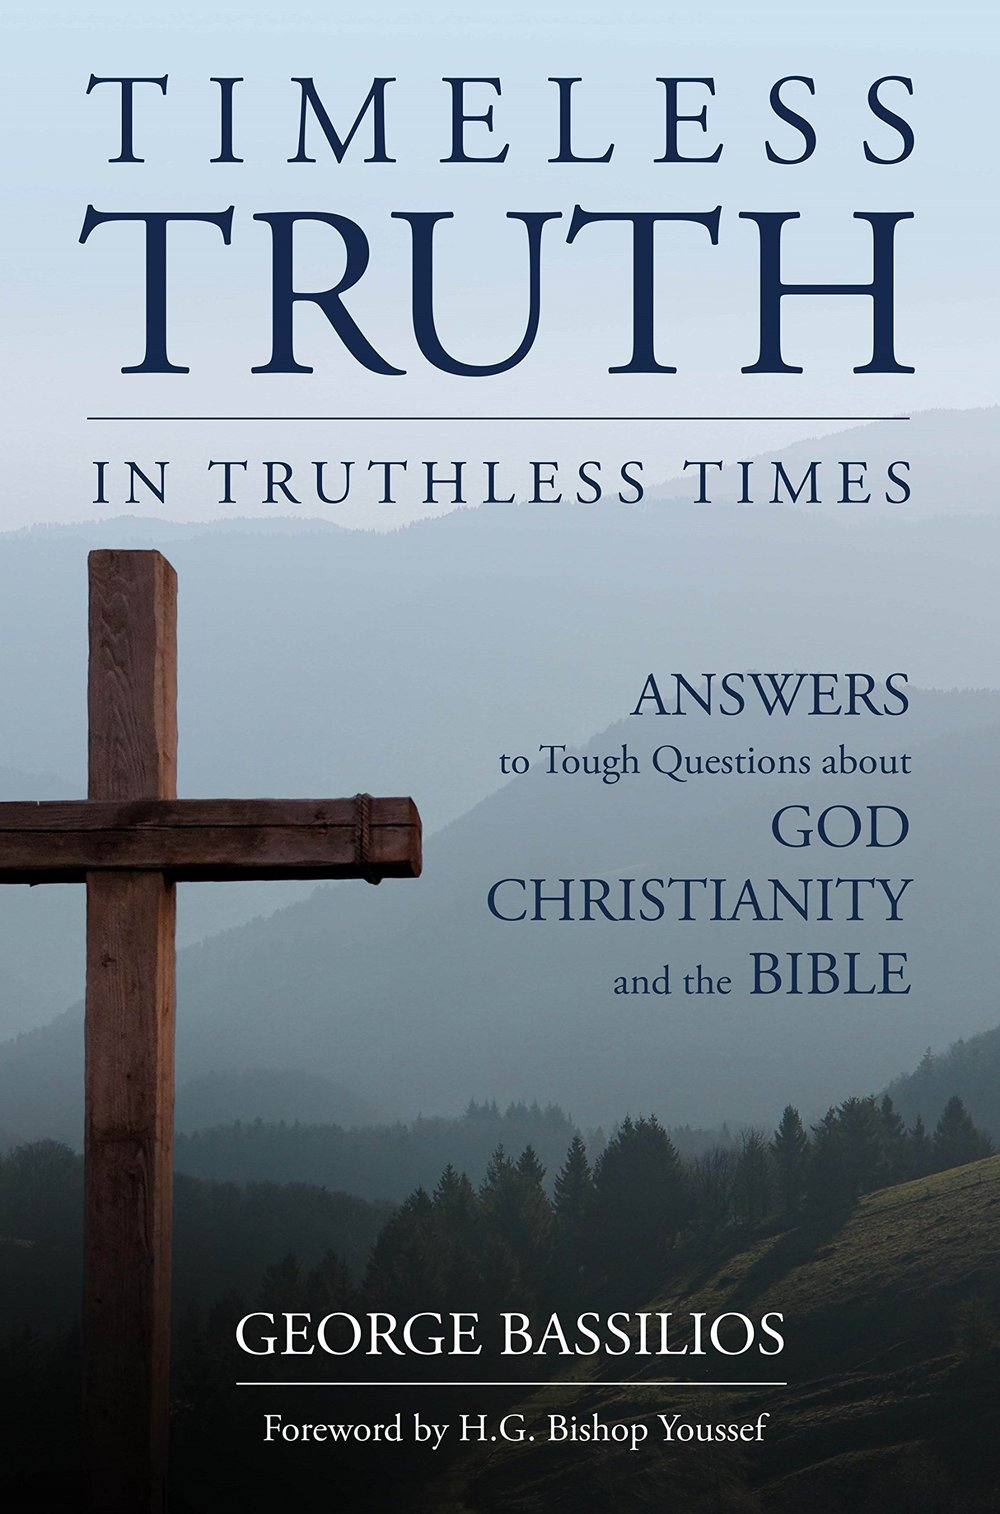 TOUGH QUESTIONS ANSWERED! - In this book, you will find insightful and concise answers to 35 tough questions about God, Christianity and the Bible, such as:Who created God?Why did God create people knowing they will end up in hell?Why is there so much evil in this world?Can I live a good moral life without God?It is the culmination of 15 years of Christian Apologetics (defending the Christian faith) and youth ministry.